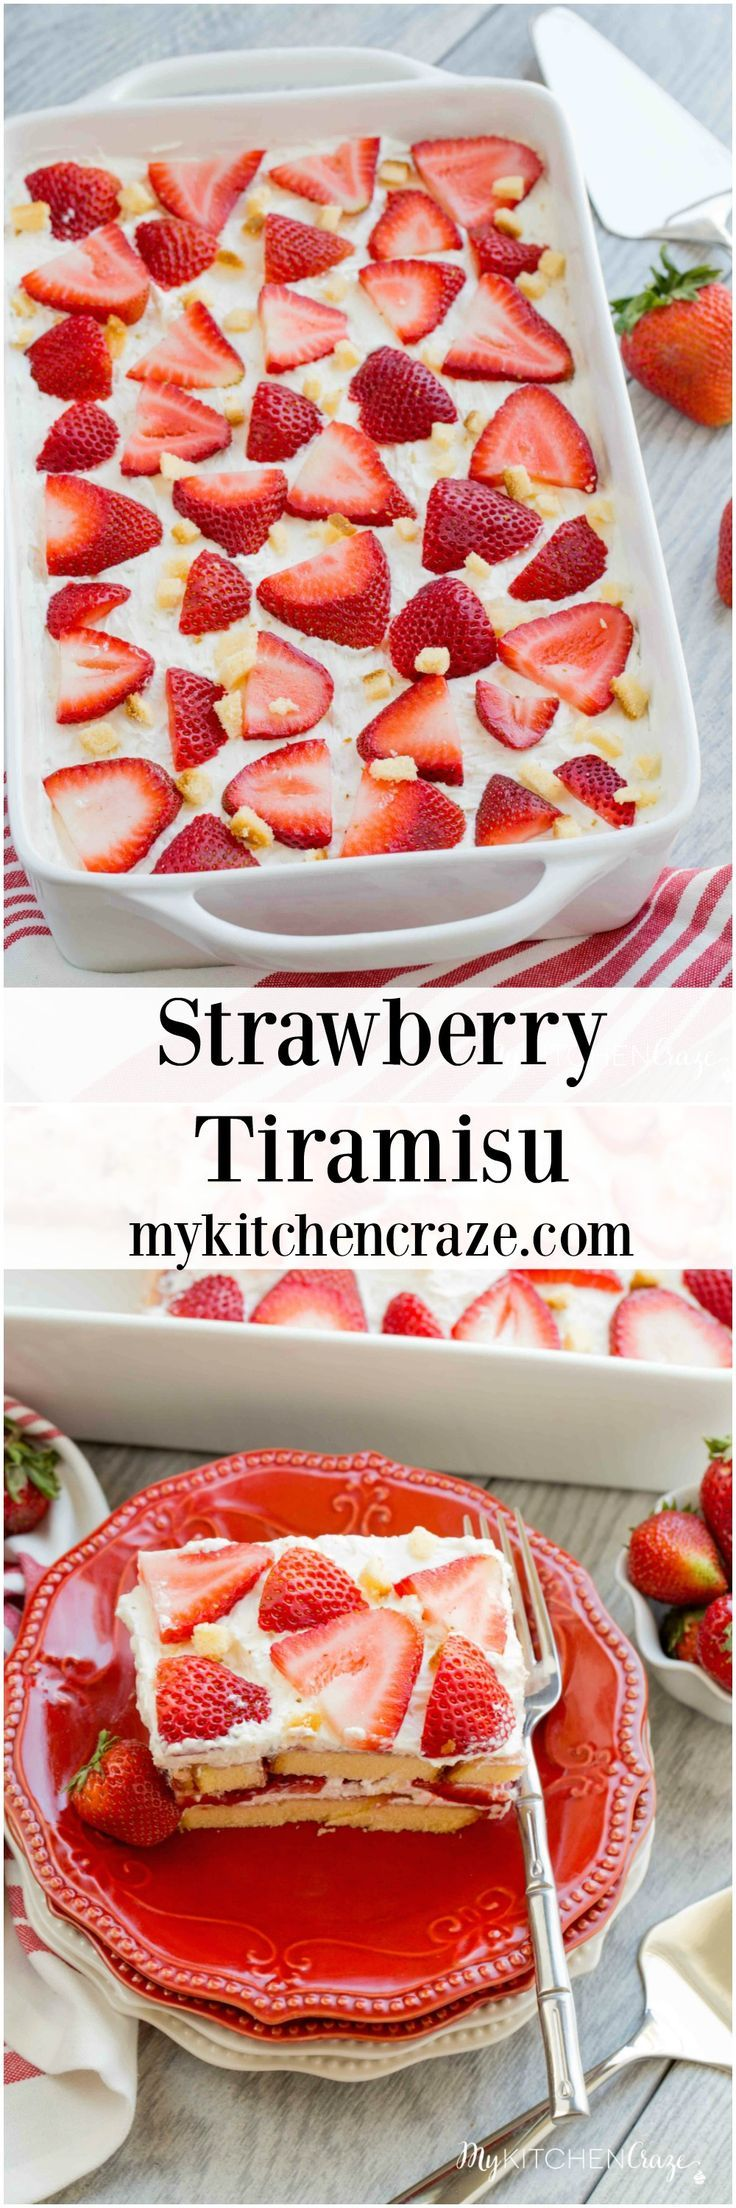 Strawberry Tiramisu ~ mykitchencraze.com ~ Enjoy this delicious and fun twist on tiramisu! Loaded with strawberries, pound cake, mascarpone cheese and cool whip. This is one dessert you won't be able to pass up! #MomsDayTreats #ad @Sara Lee Desserts @Cool